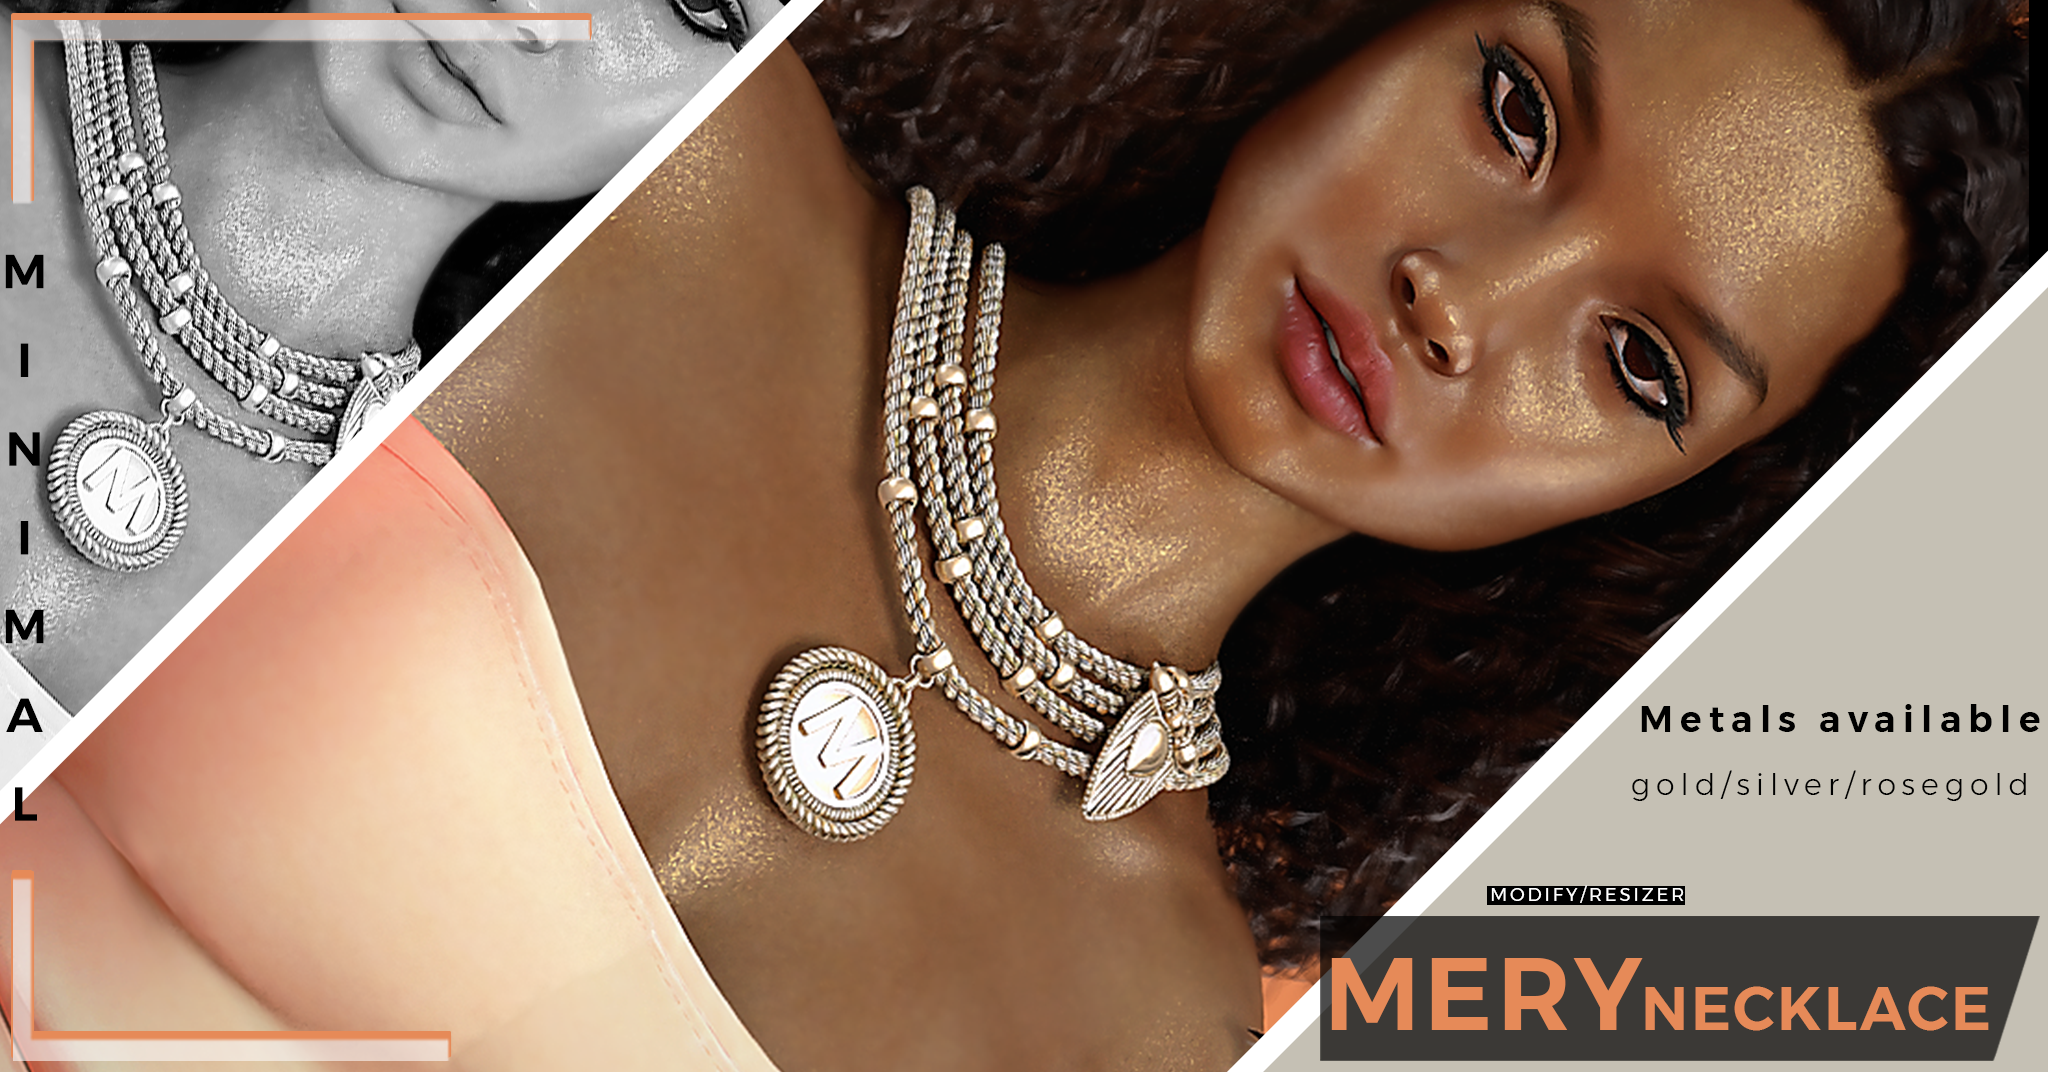 MINIMAL - Mery Necklace.png